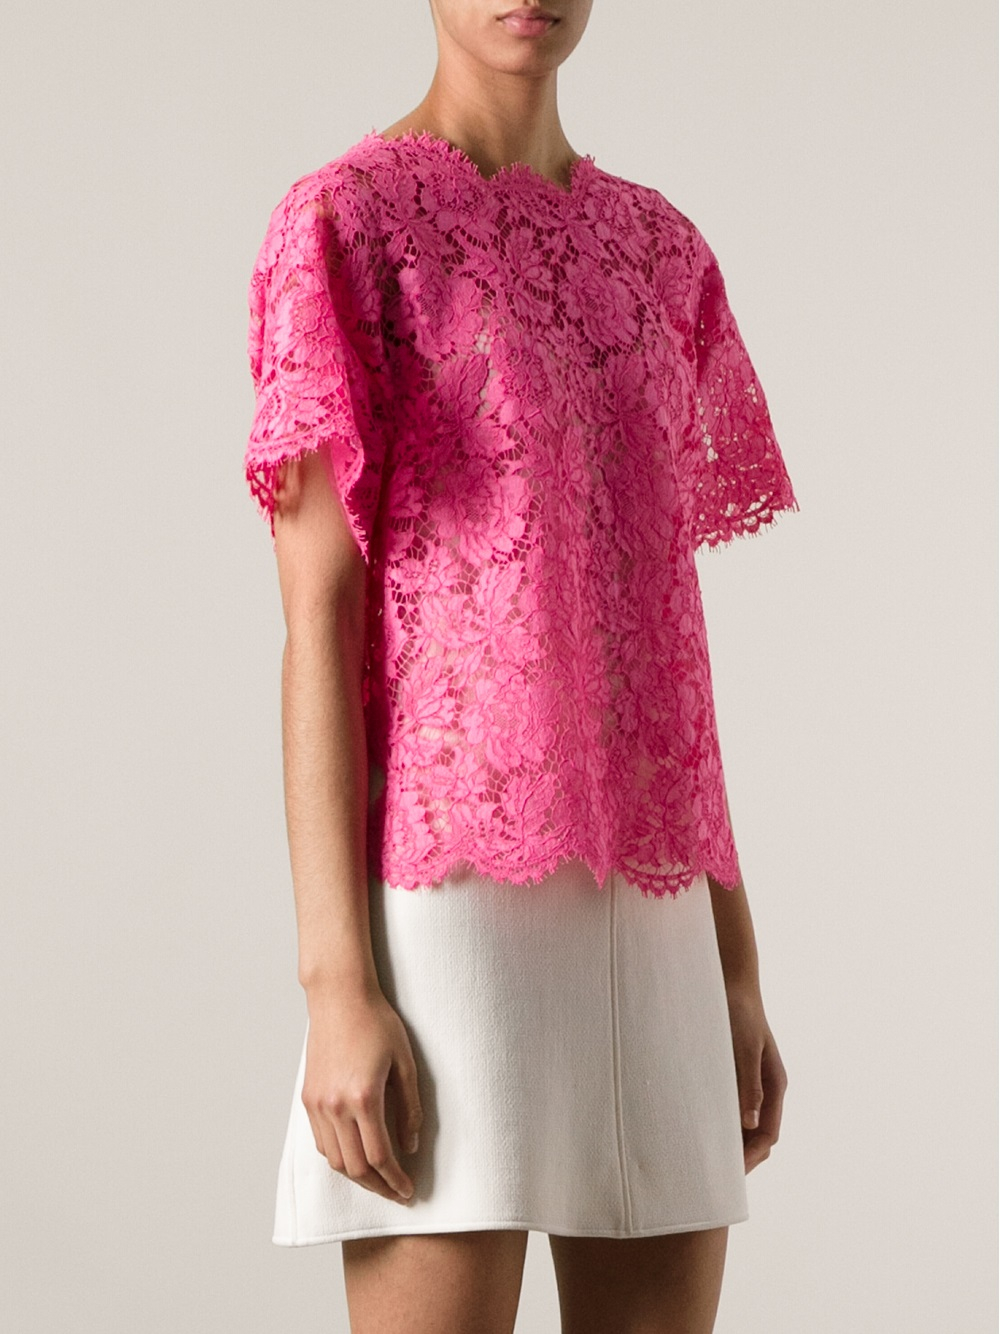 Pink Blouses For Women